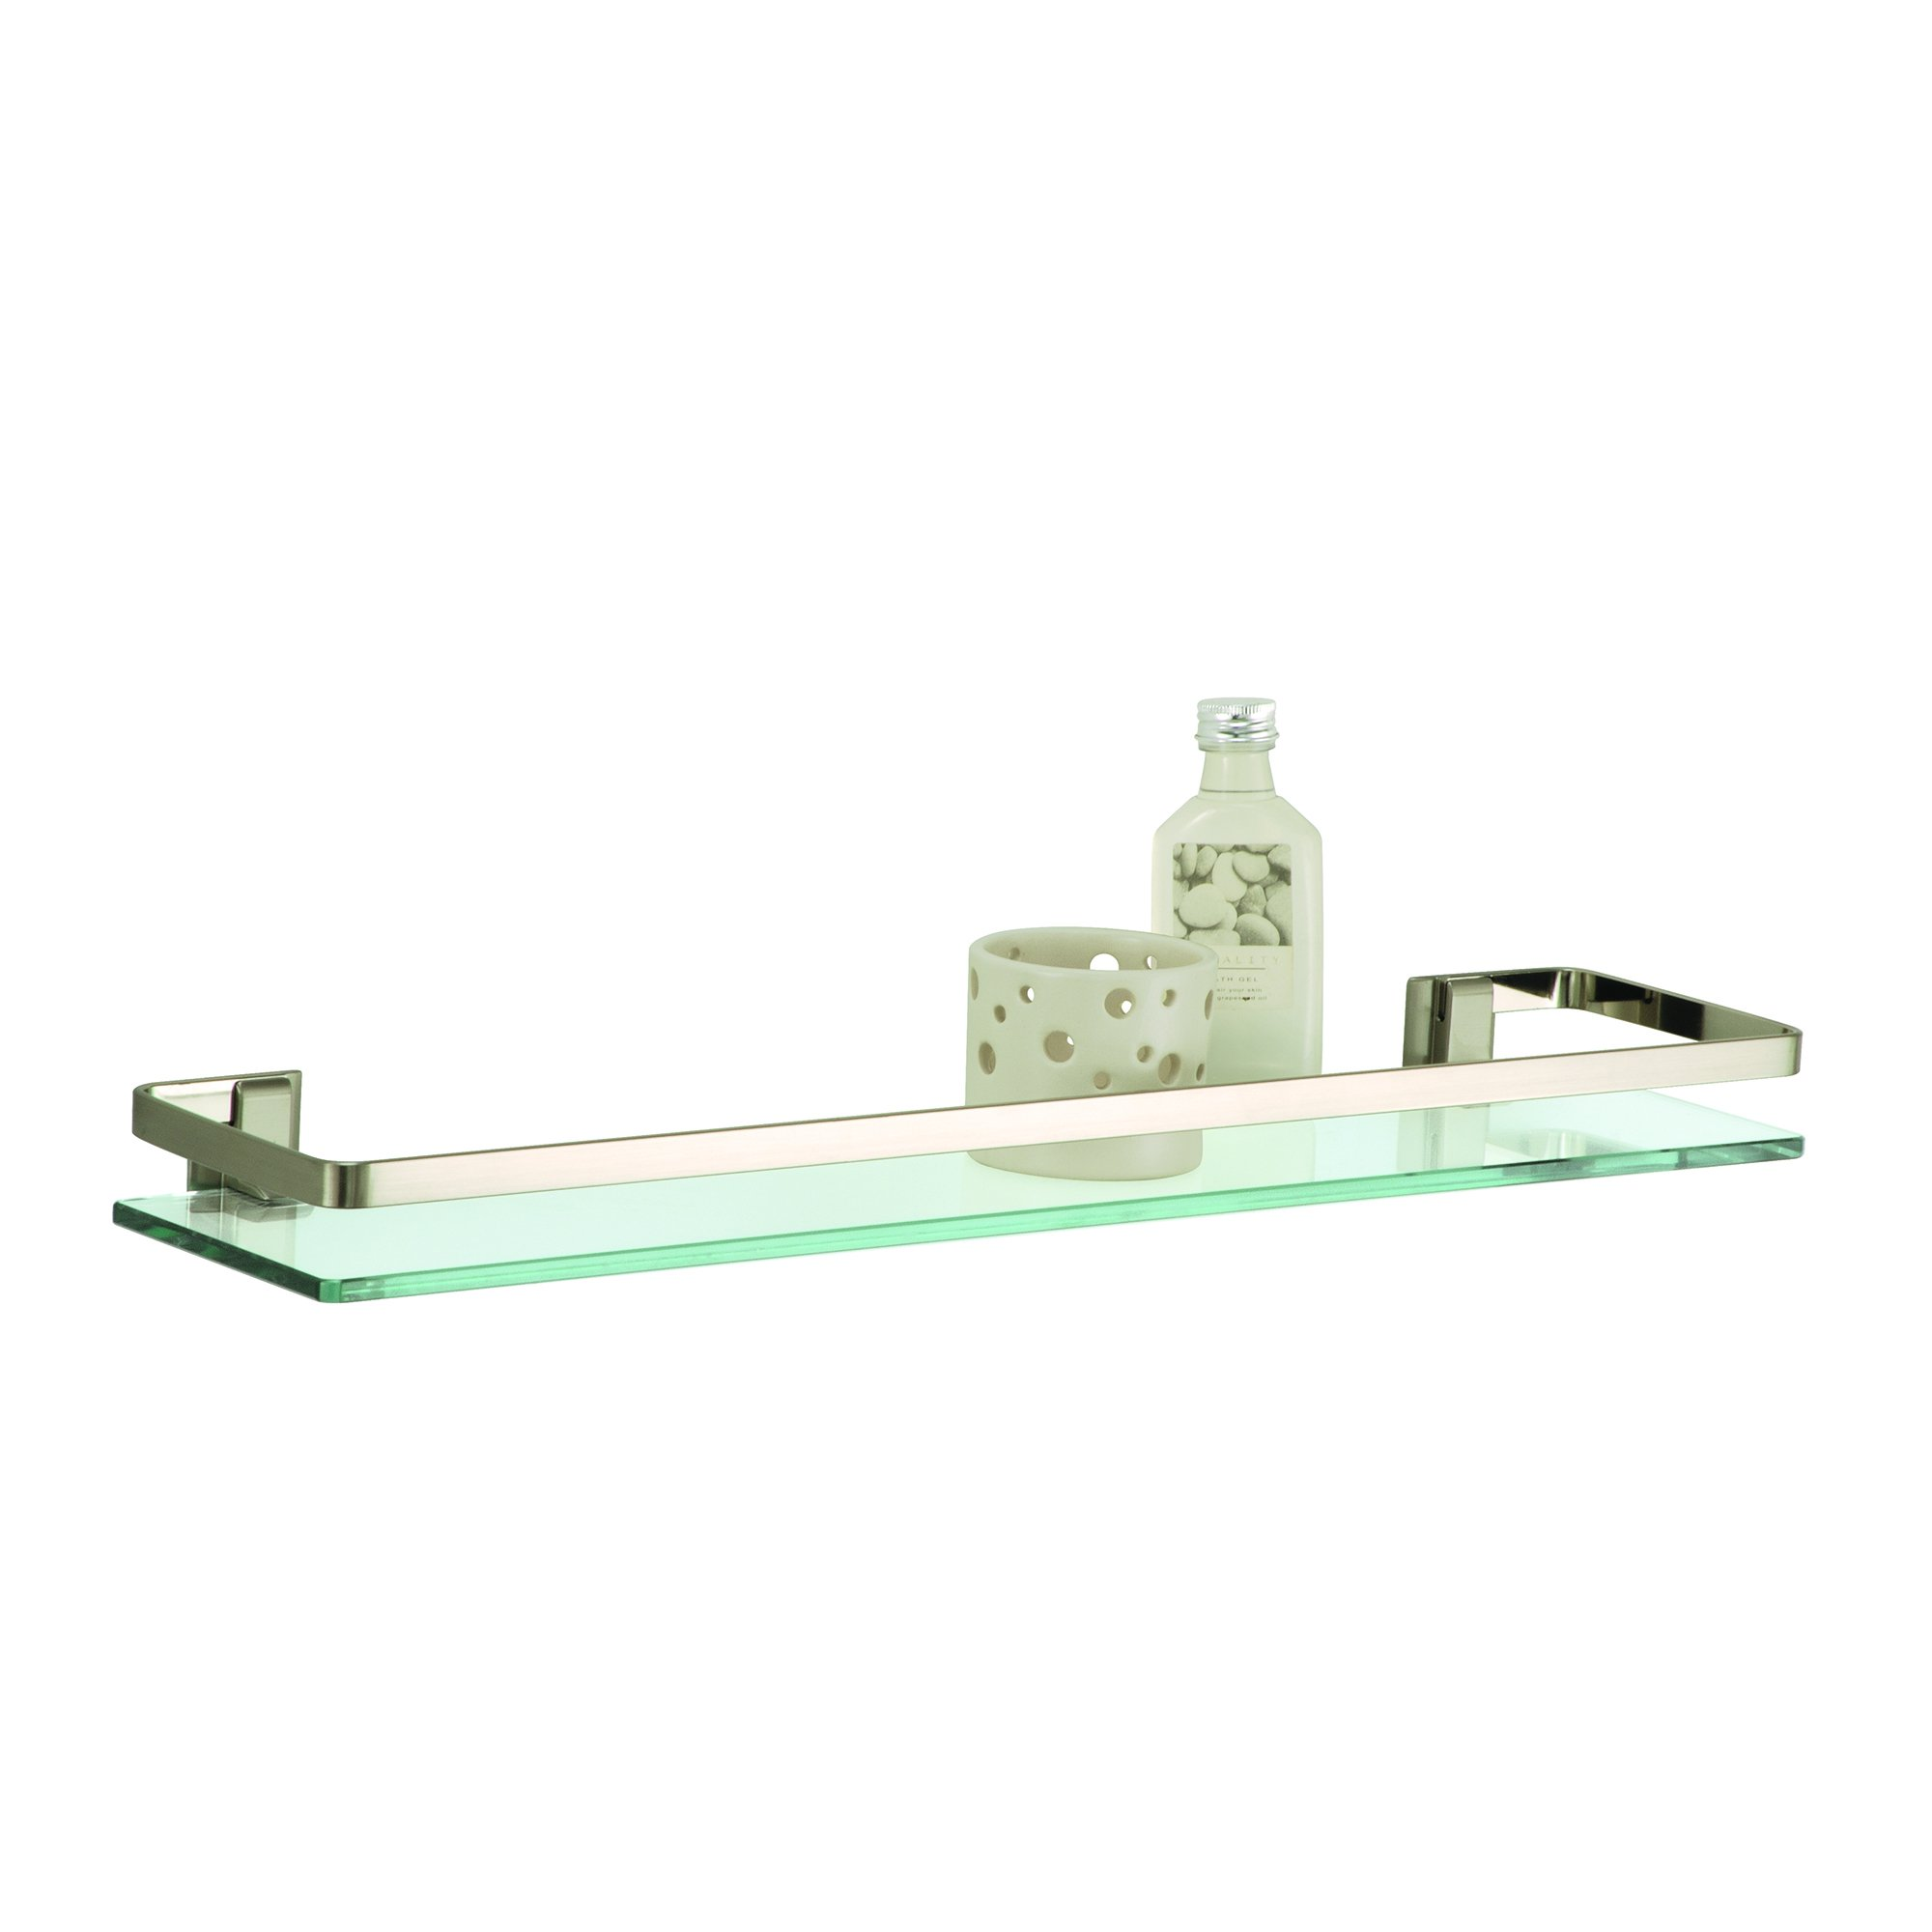 Organize It All Wall Mounting Glass Shelf with Nickle Finish and Rail by Organize It All